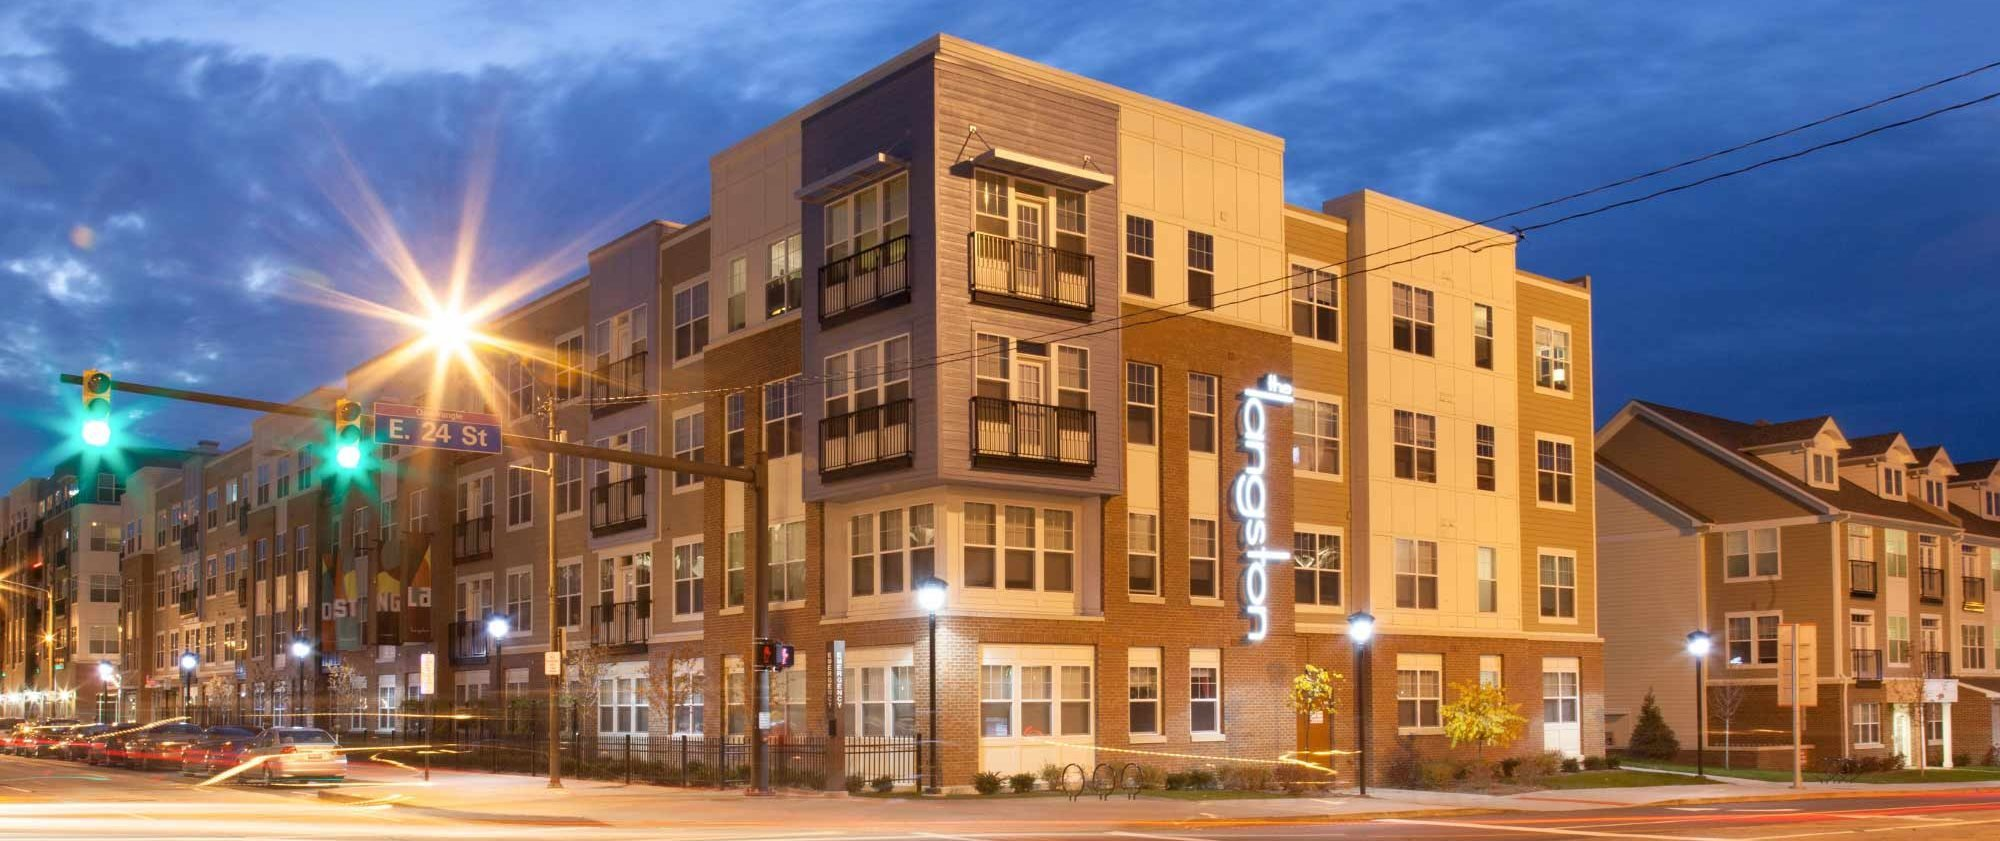 The Langston | Apartments near Cleveland State University ...